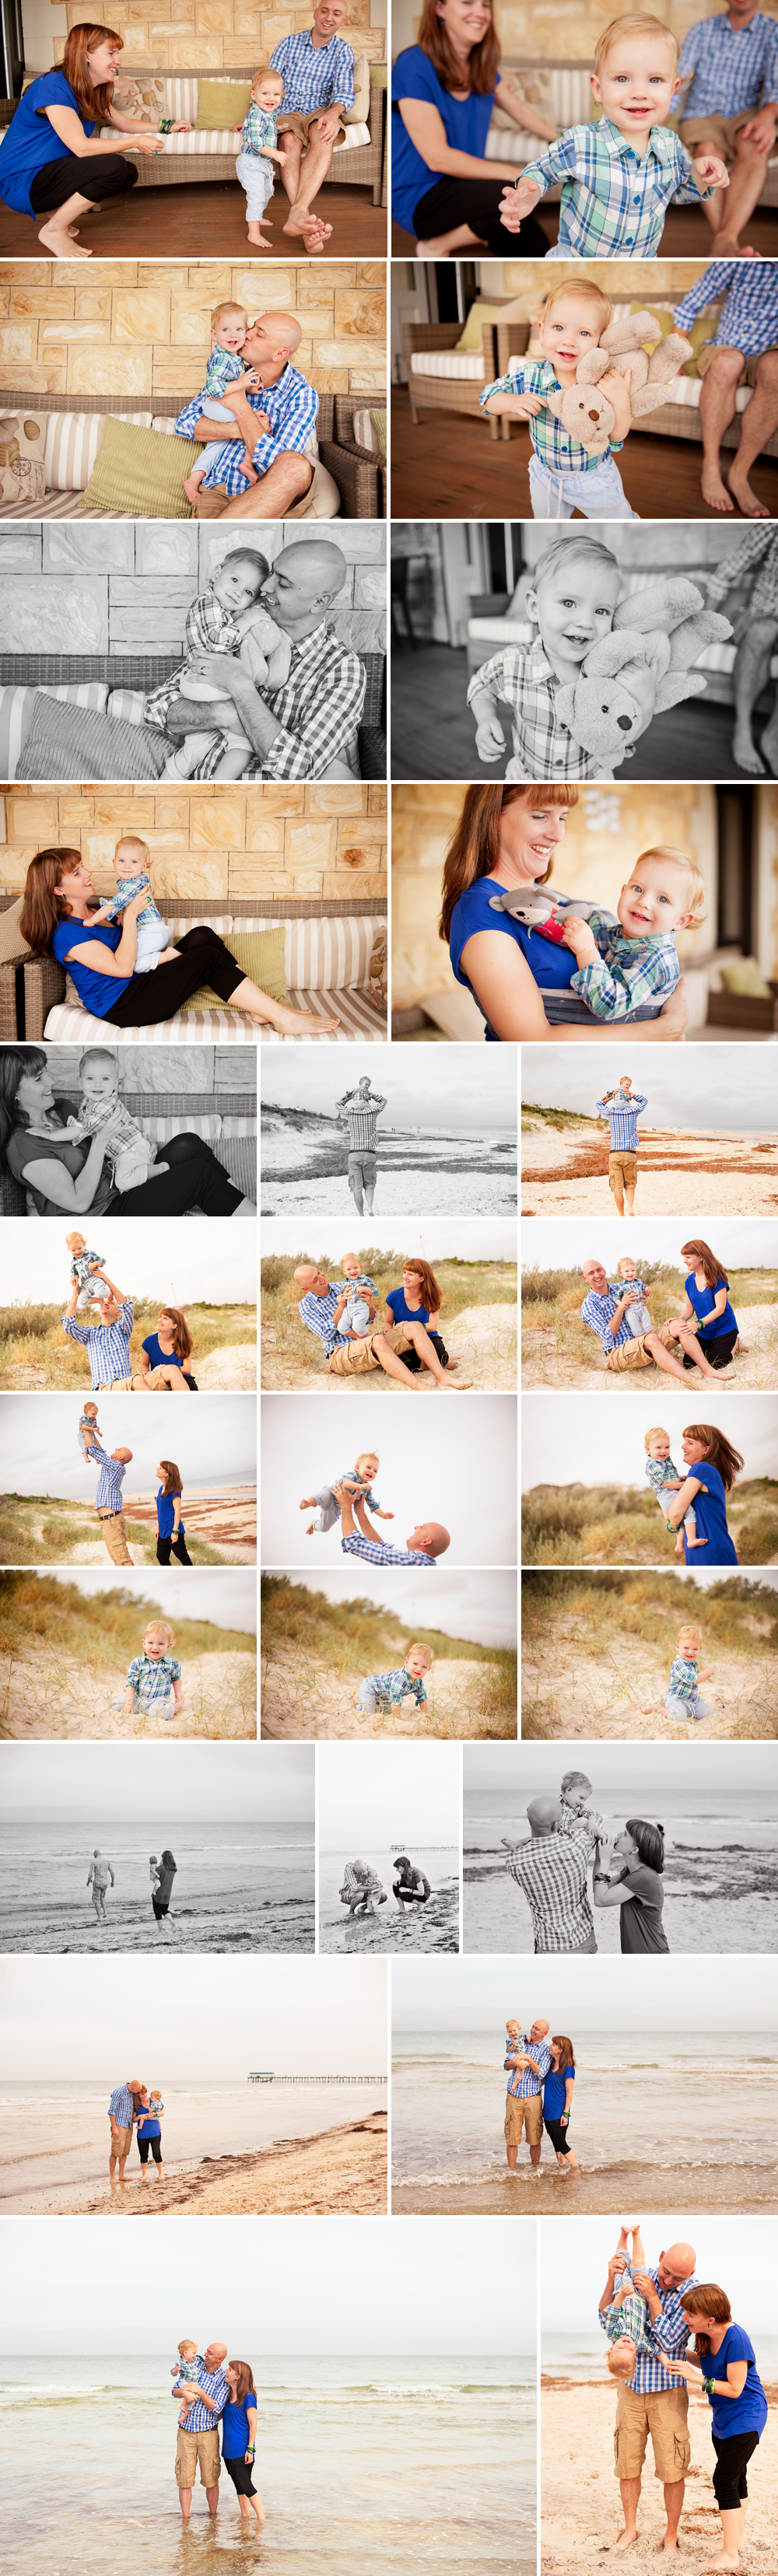 Beach-family-photography-session-in-Adelaide